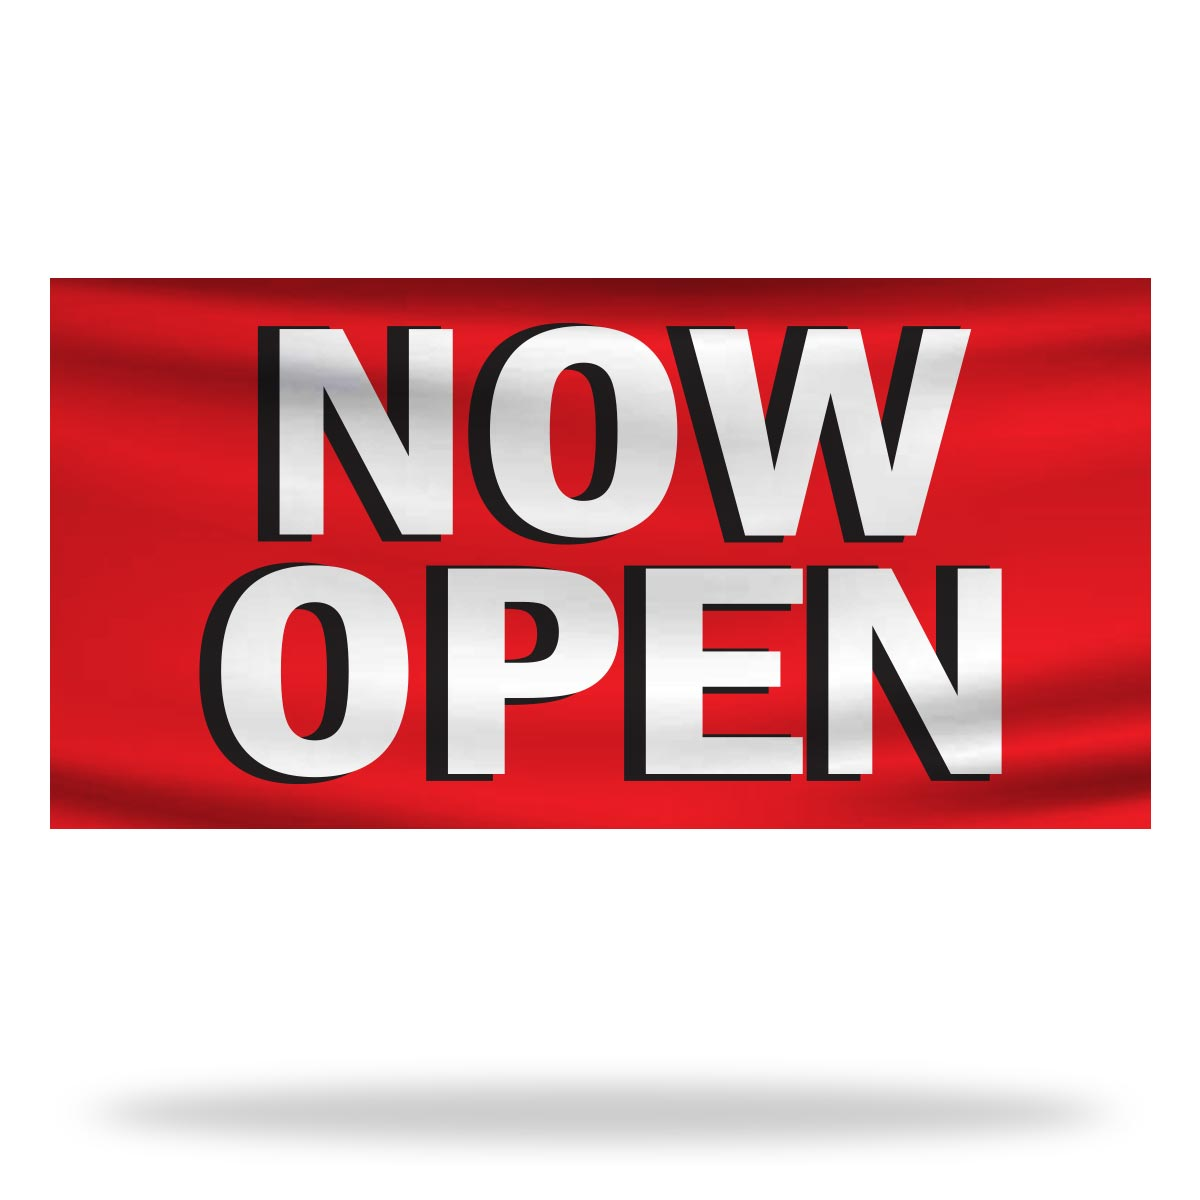 Now Open Flags & Banners Design 03